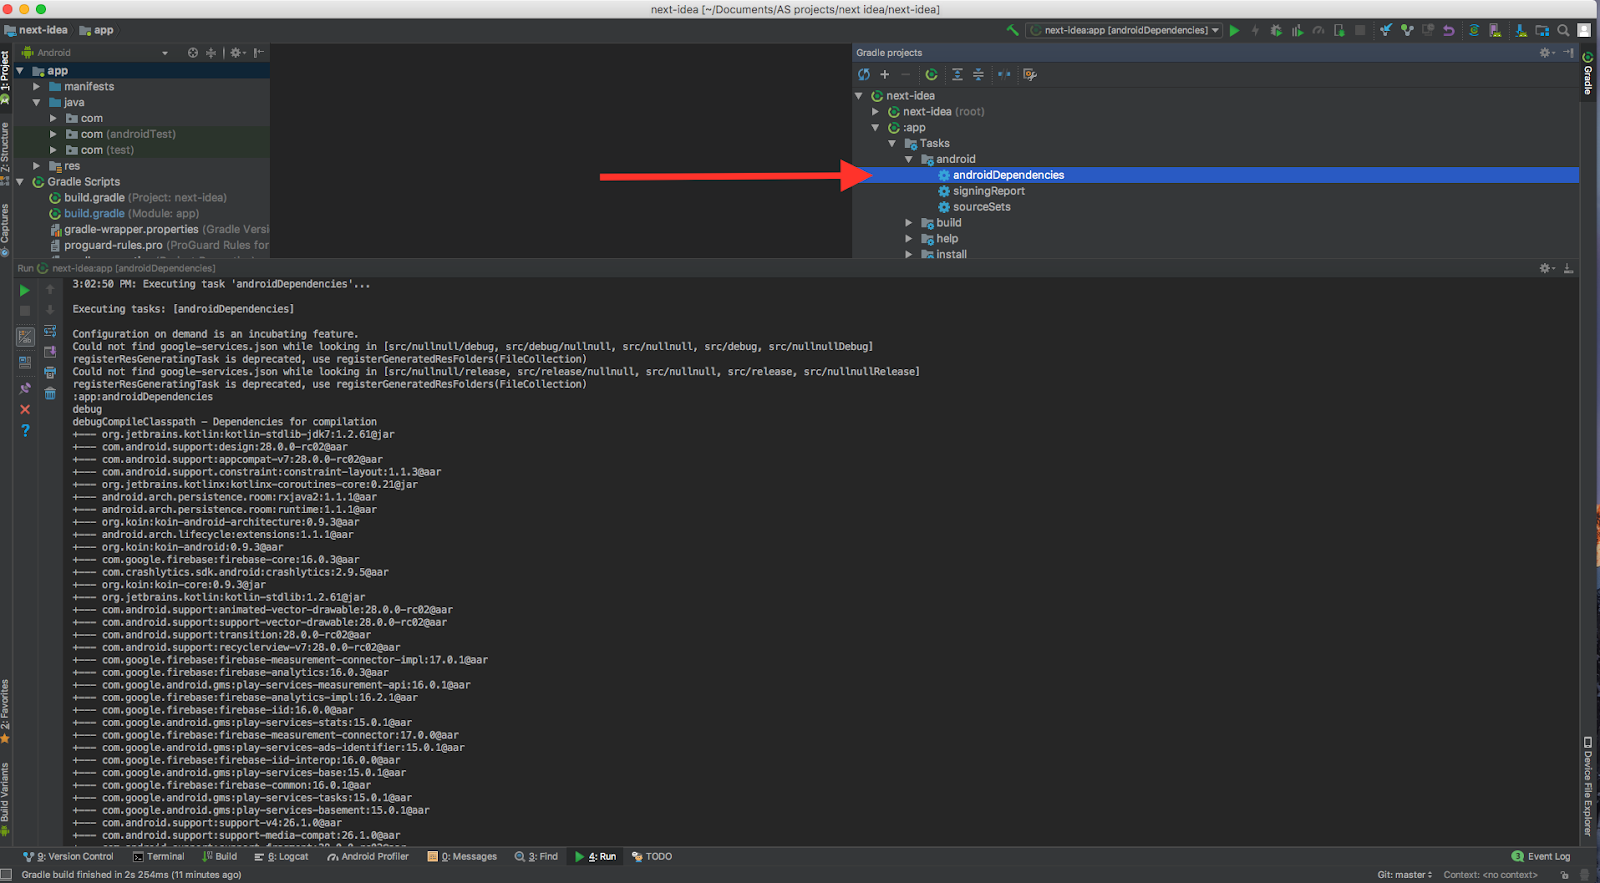 How to use gradle to find dependency tree